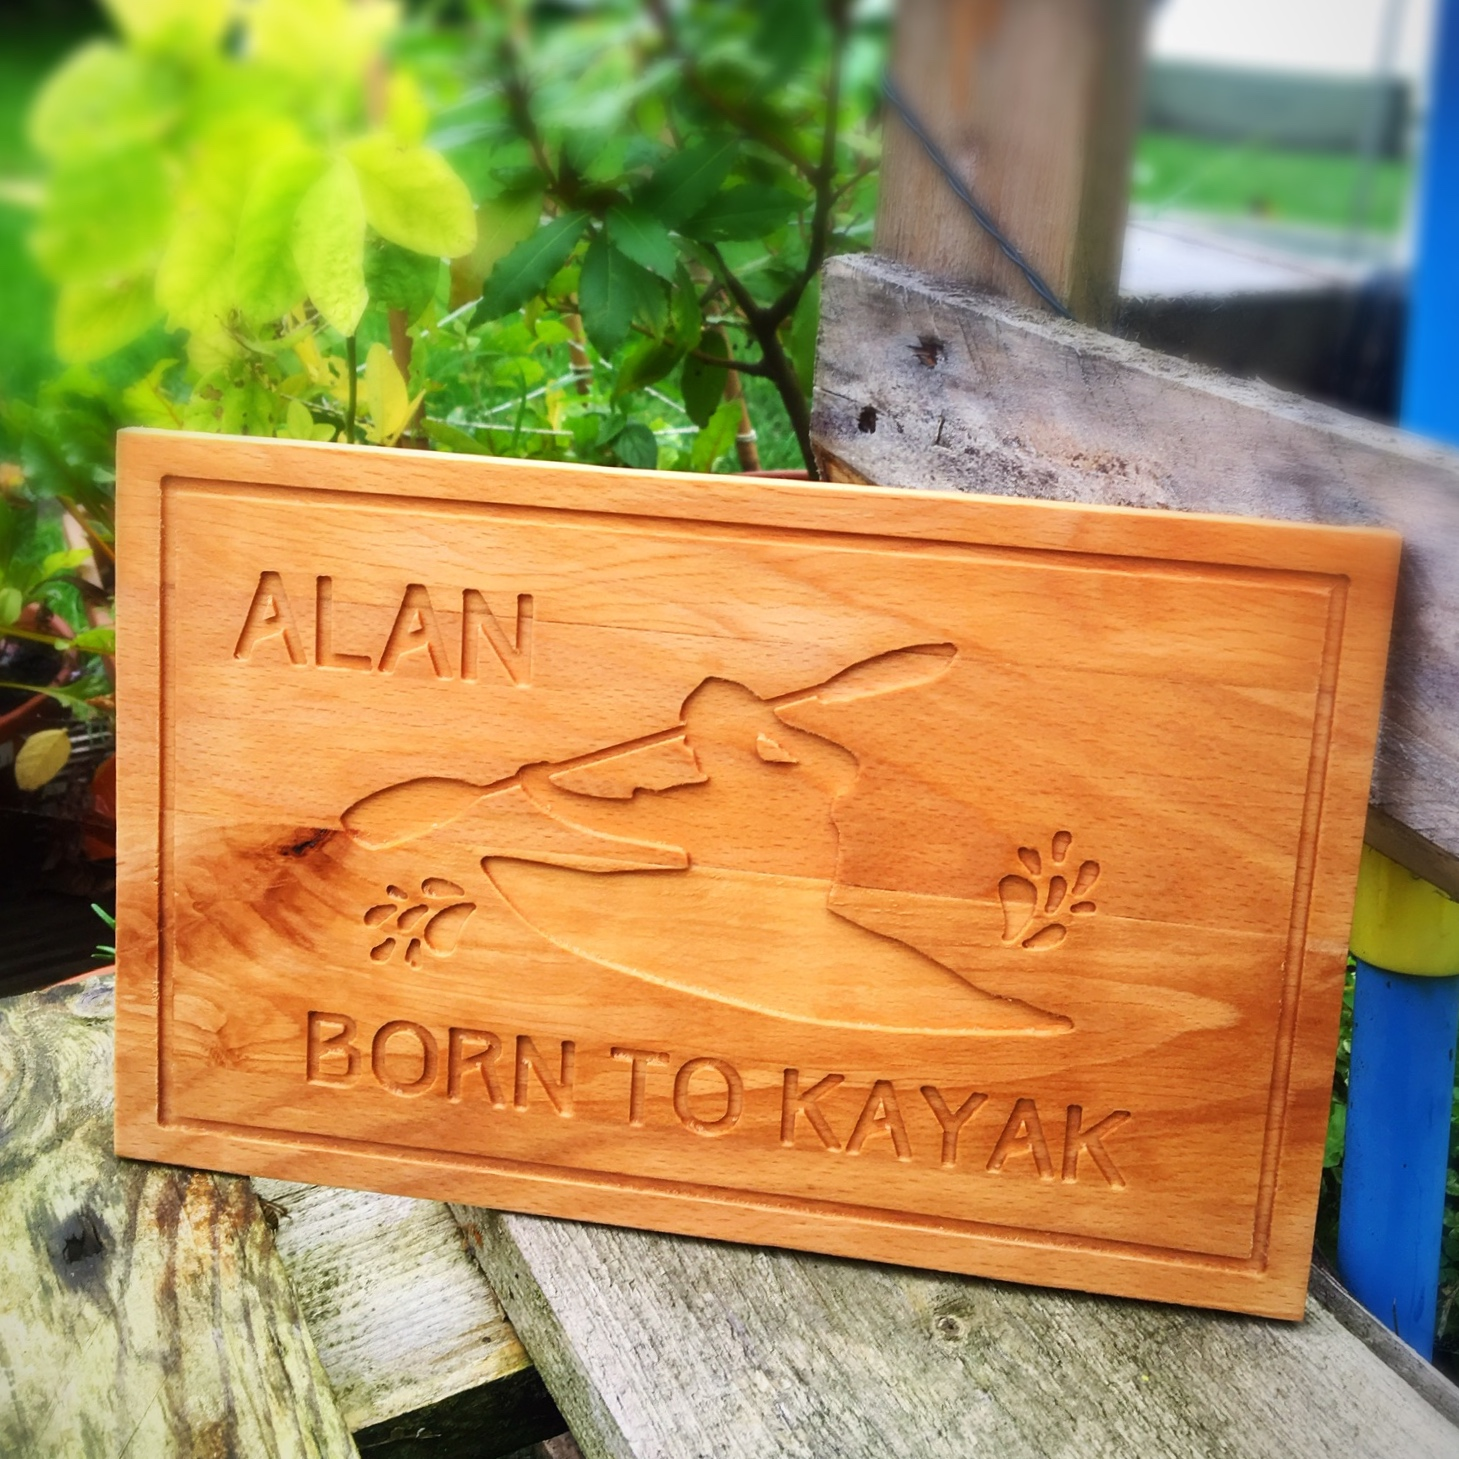 Our lovely customer Jill, wanted something a little different for her outdoor adventurer husband Alan, so she asked us to create a plaque dedicated to his love of kayaking!  Made from solid beech this will take pride of place in their home.